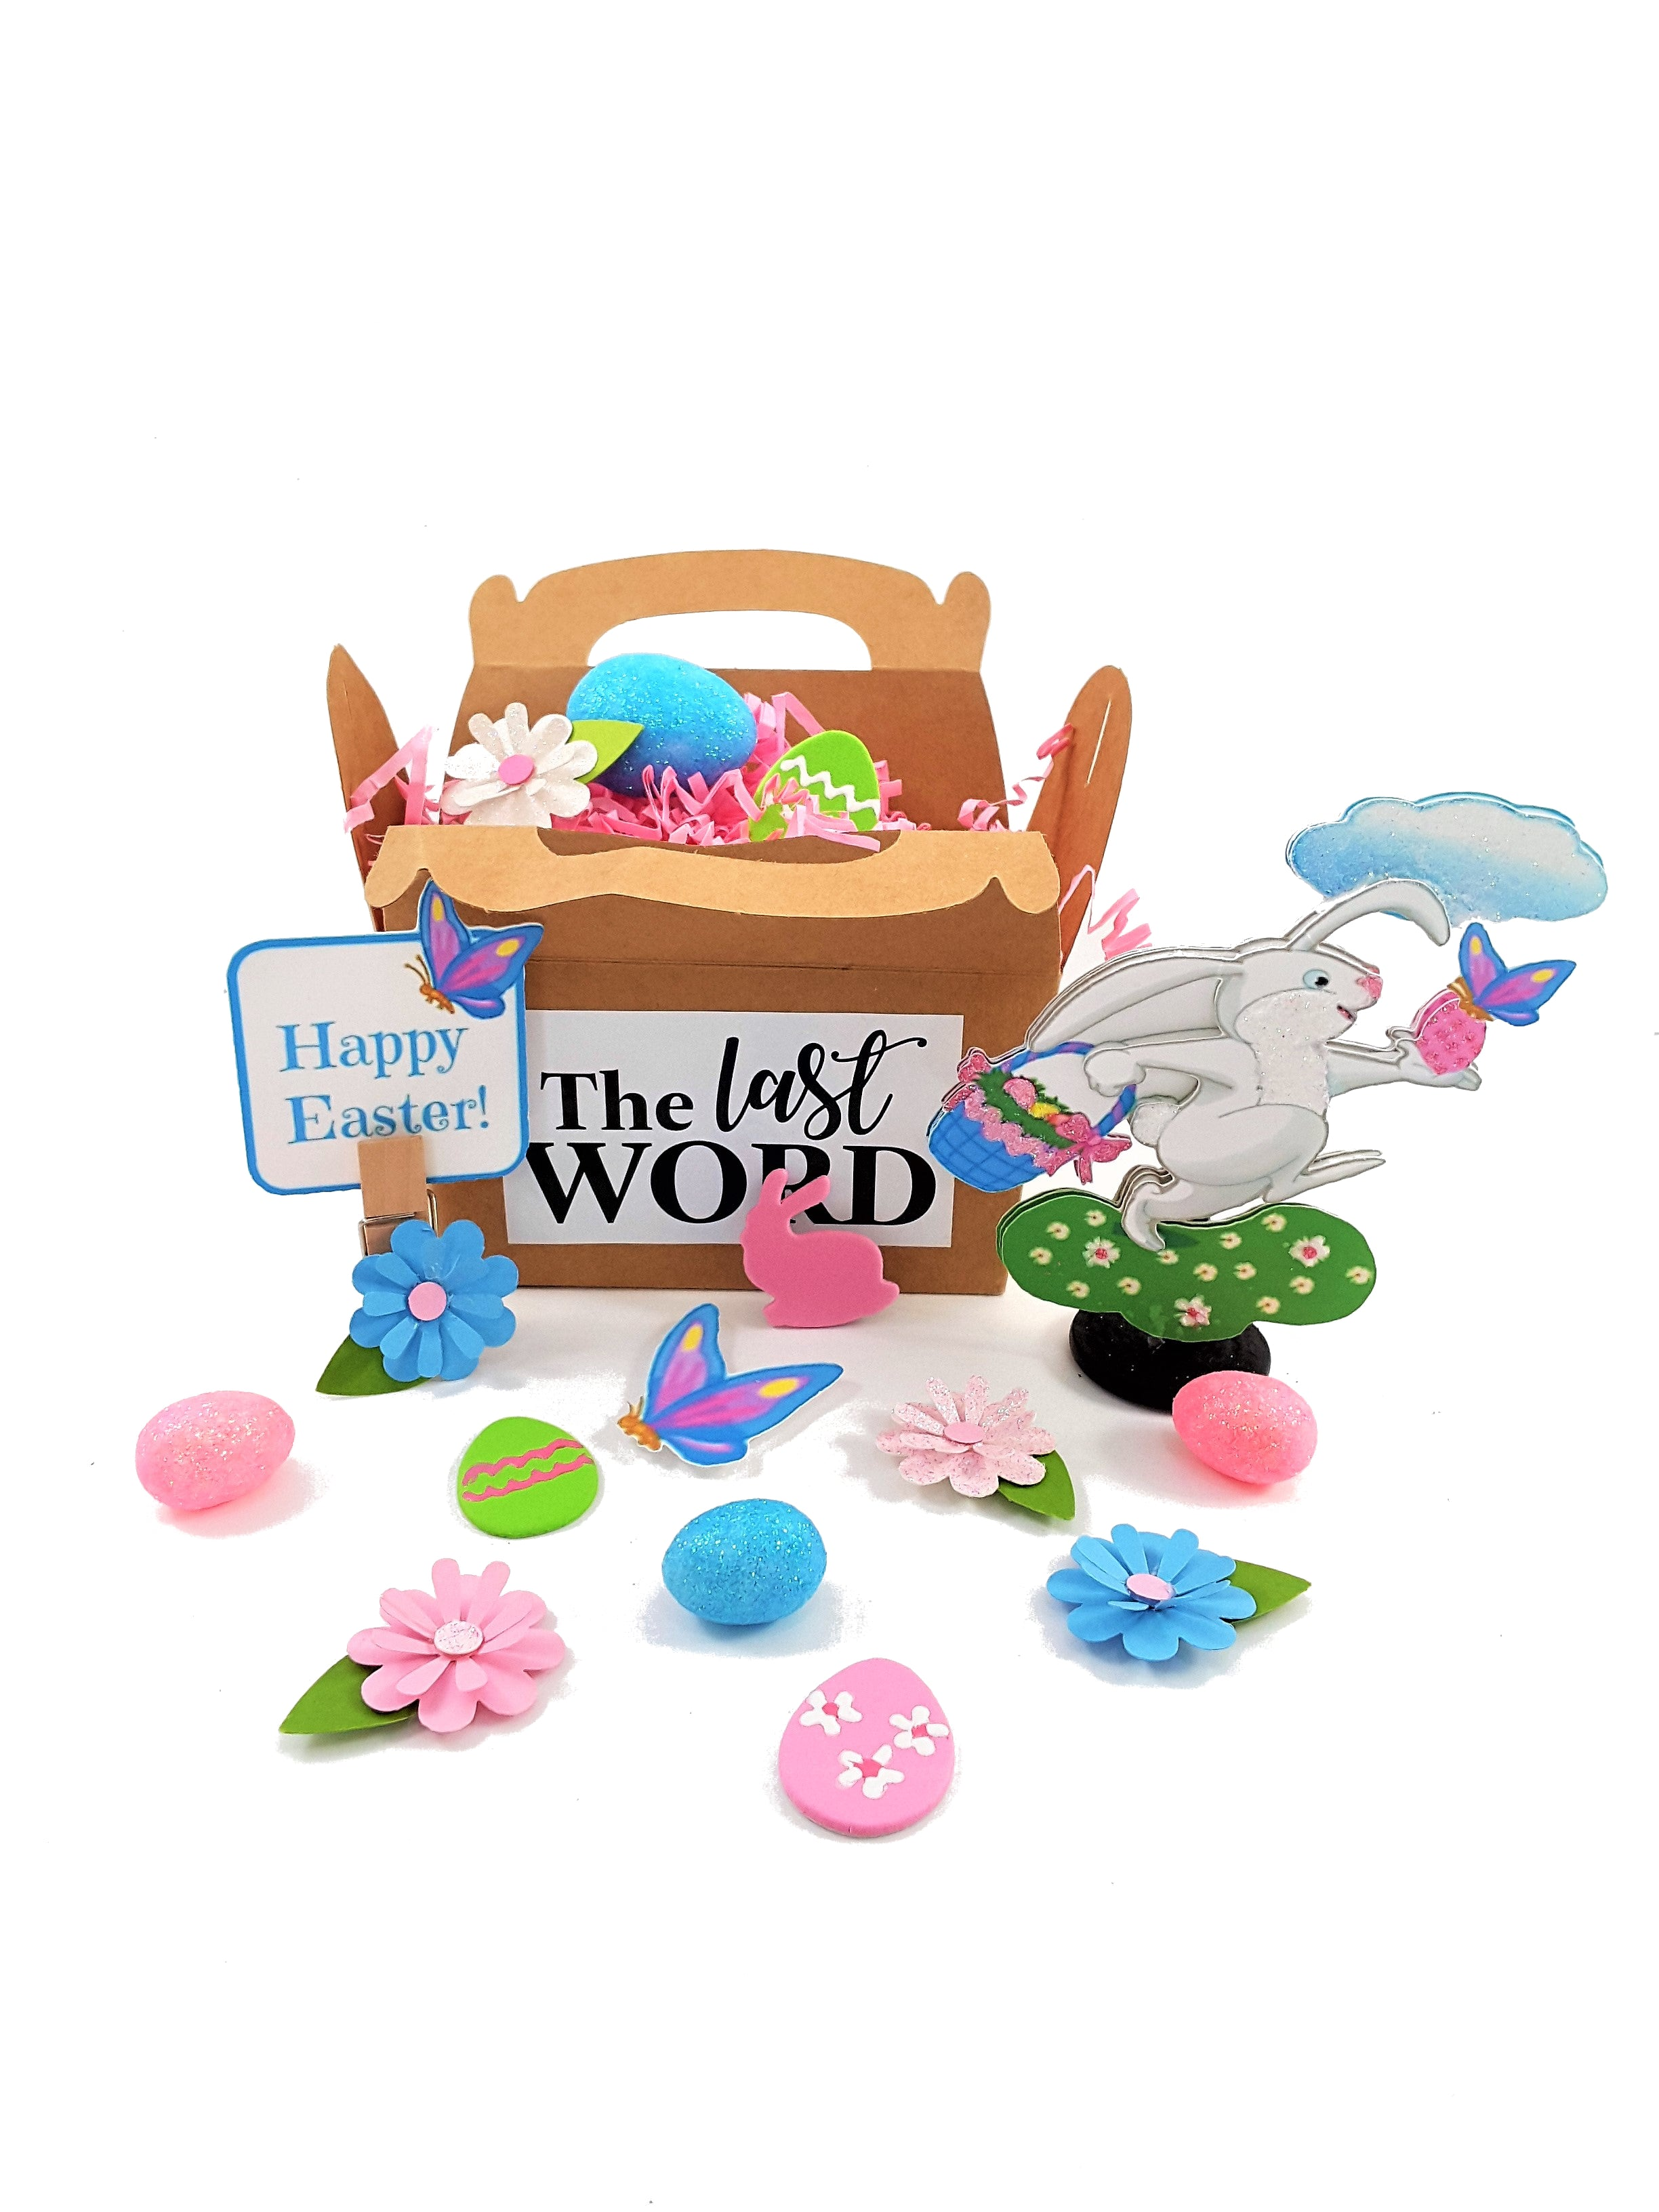 3D Easter greeting card with goodies in a box